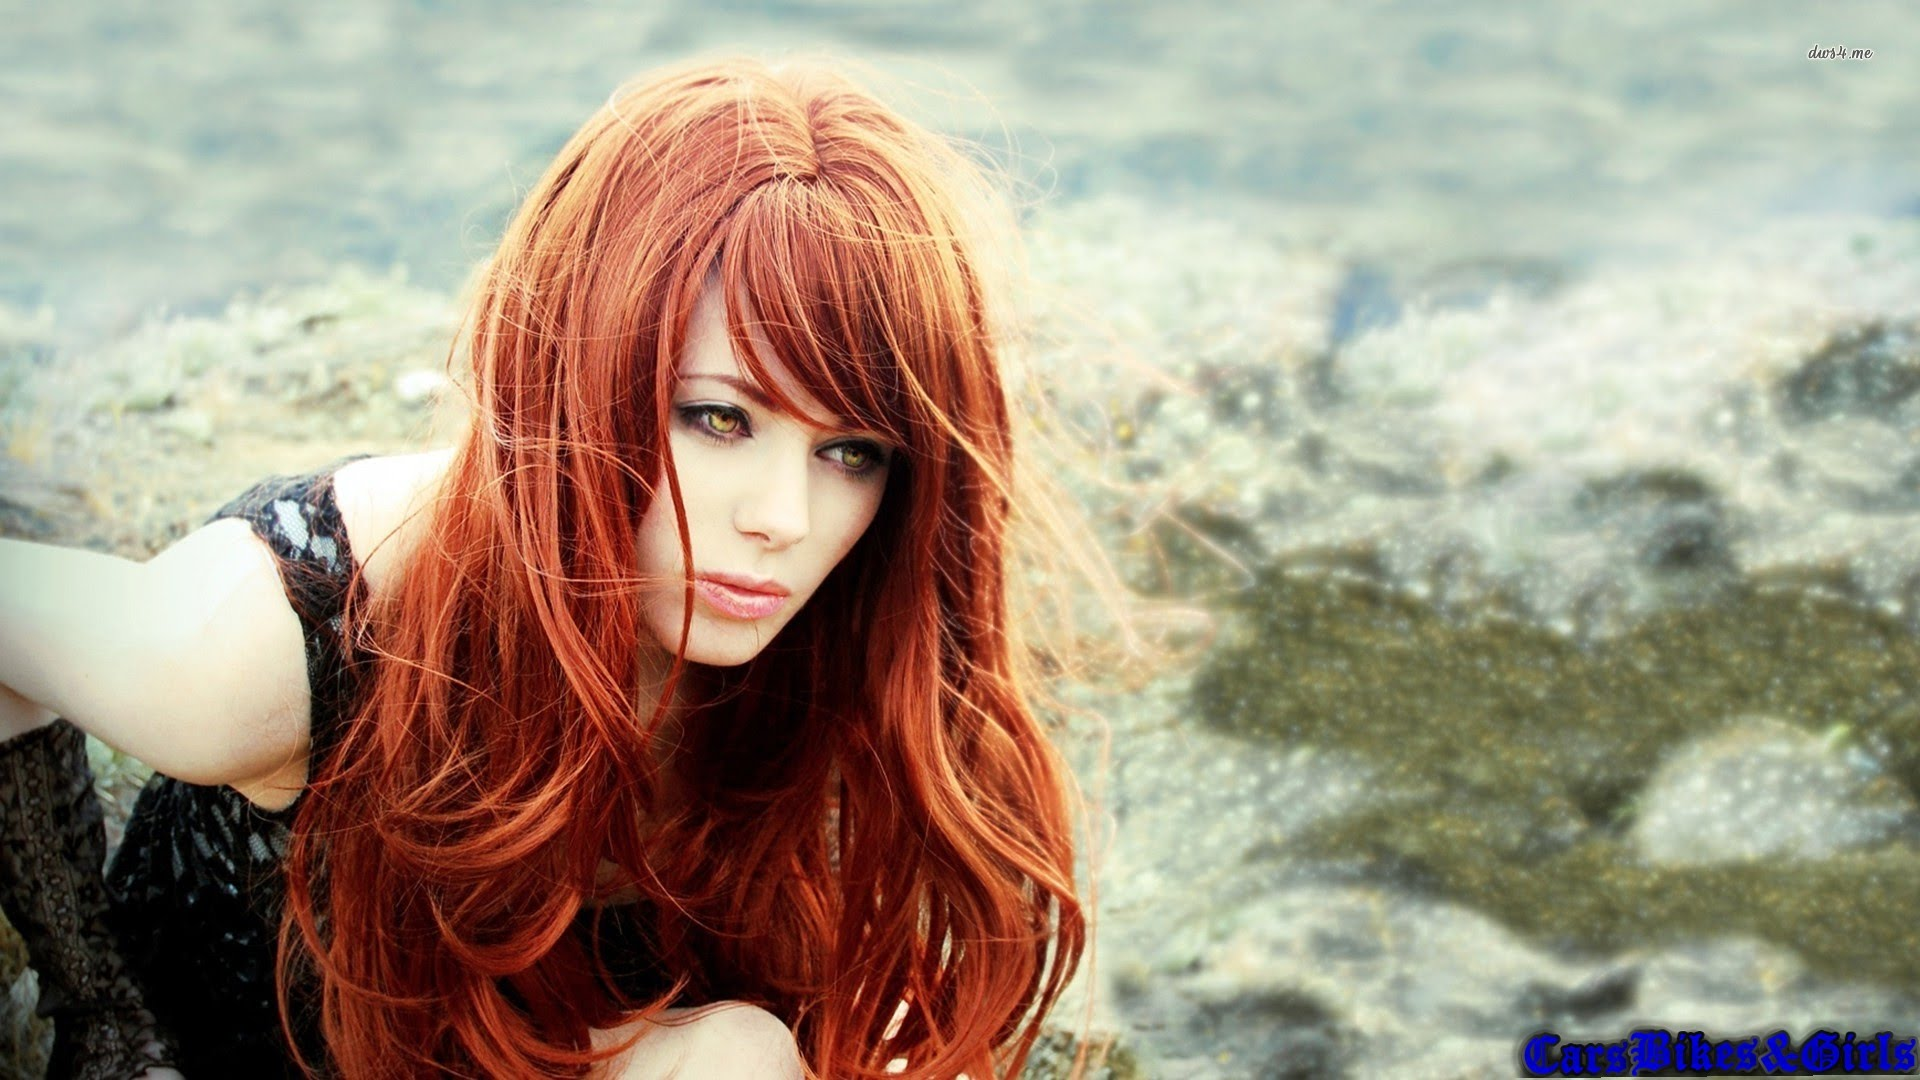 Redhead Wallpapers Desktop Page 5 1920x1080